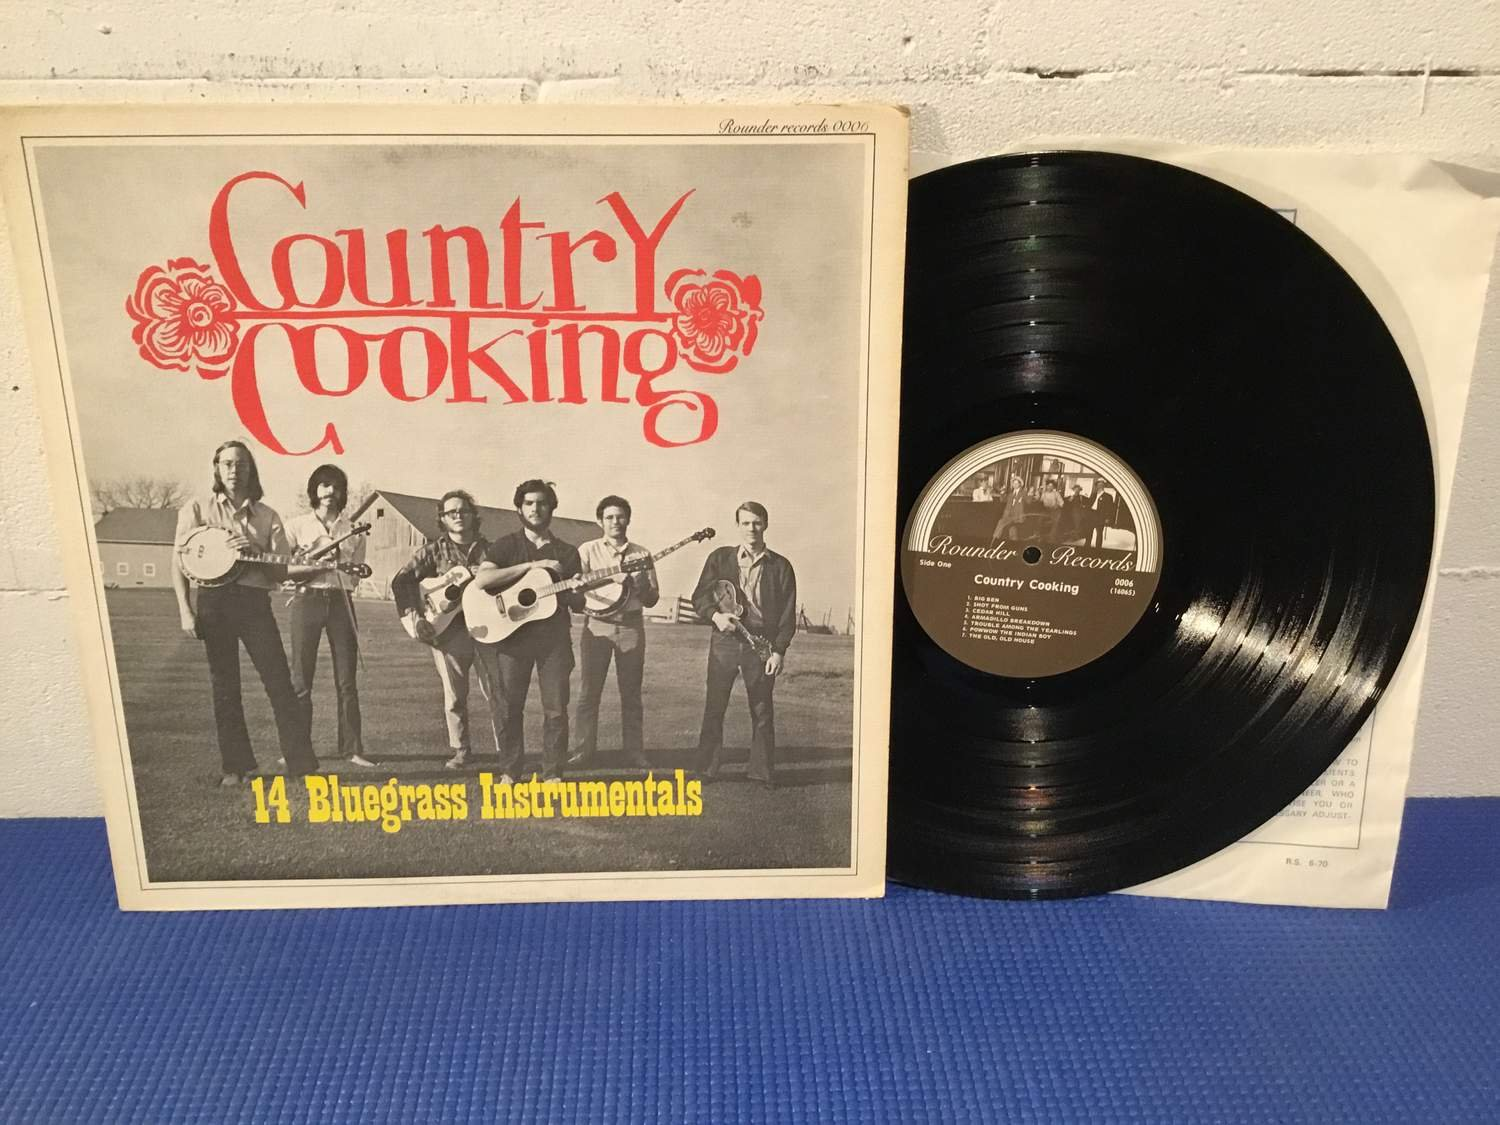 Country Cooking - 14 Bluegrass Instrumentals US Orig-71 !!!!!